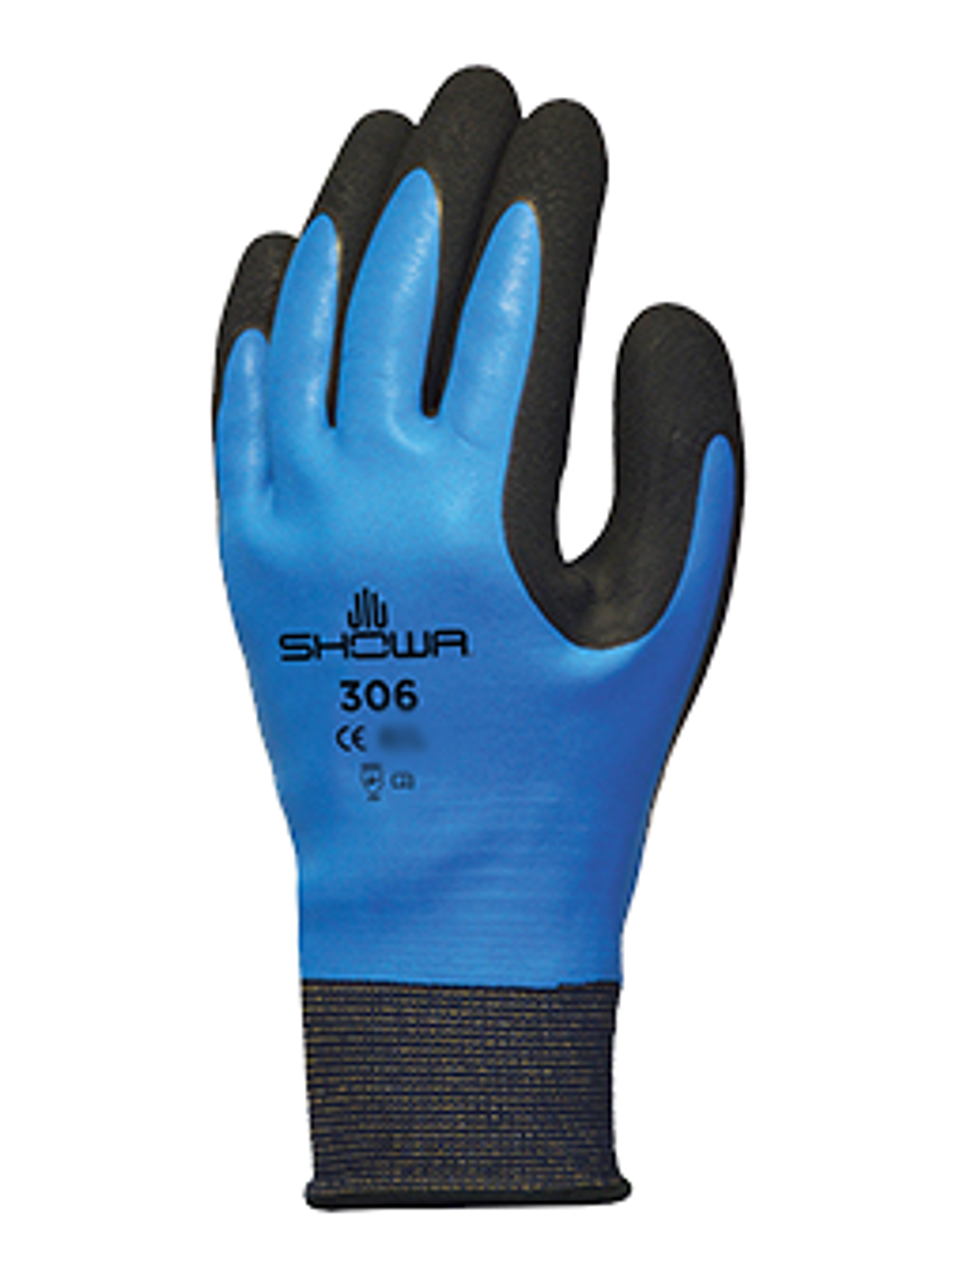 Gloves PU Coated Polyester Liner Smooth Finish Light Industrial Environment  S 7